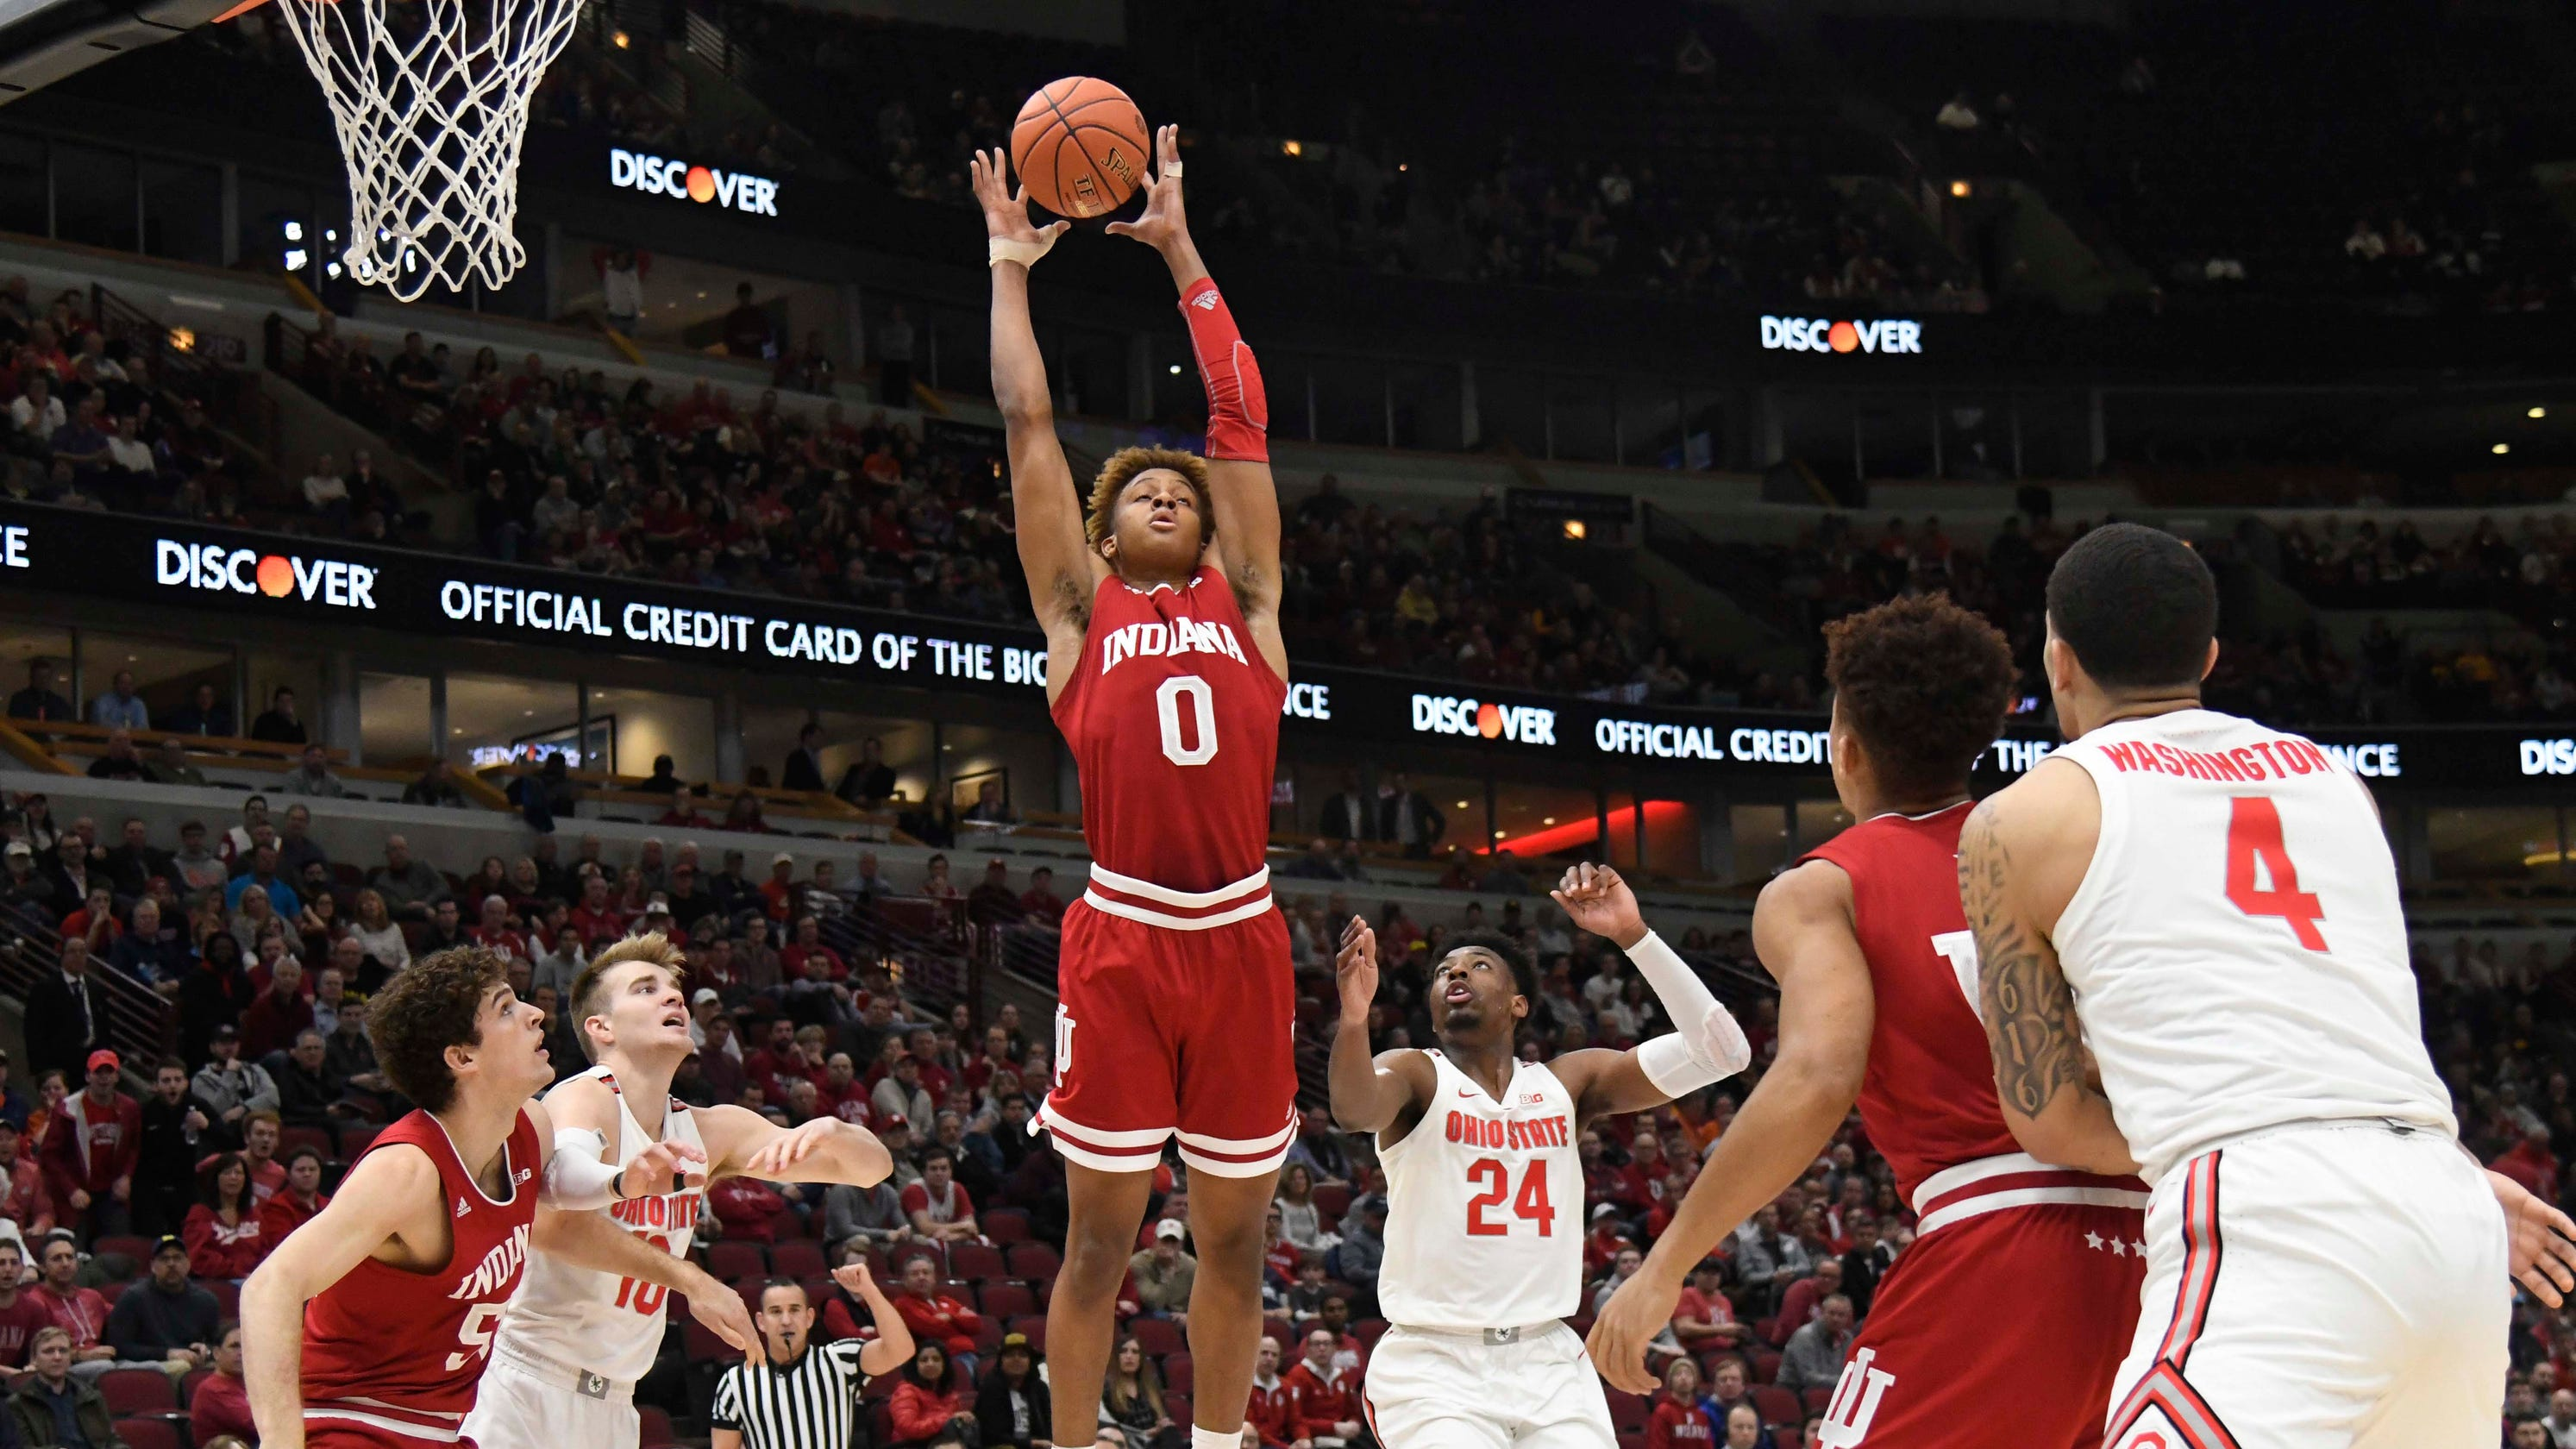 Big Ten Tournament Live Blog Iu Basketball Score Game